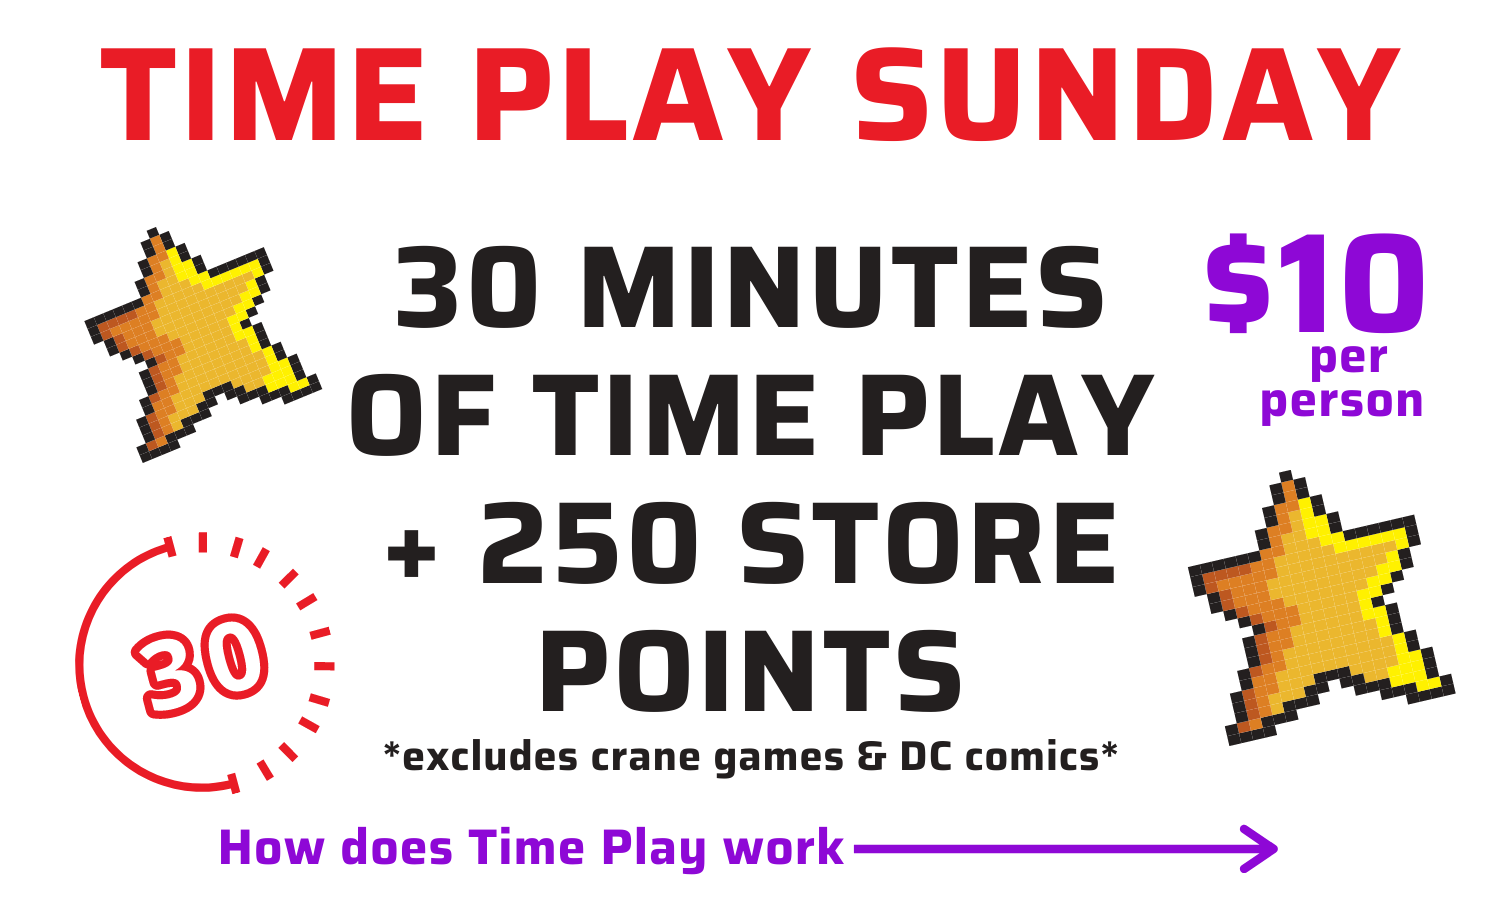 Time play sunday